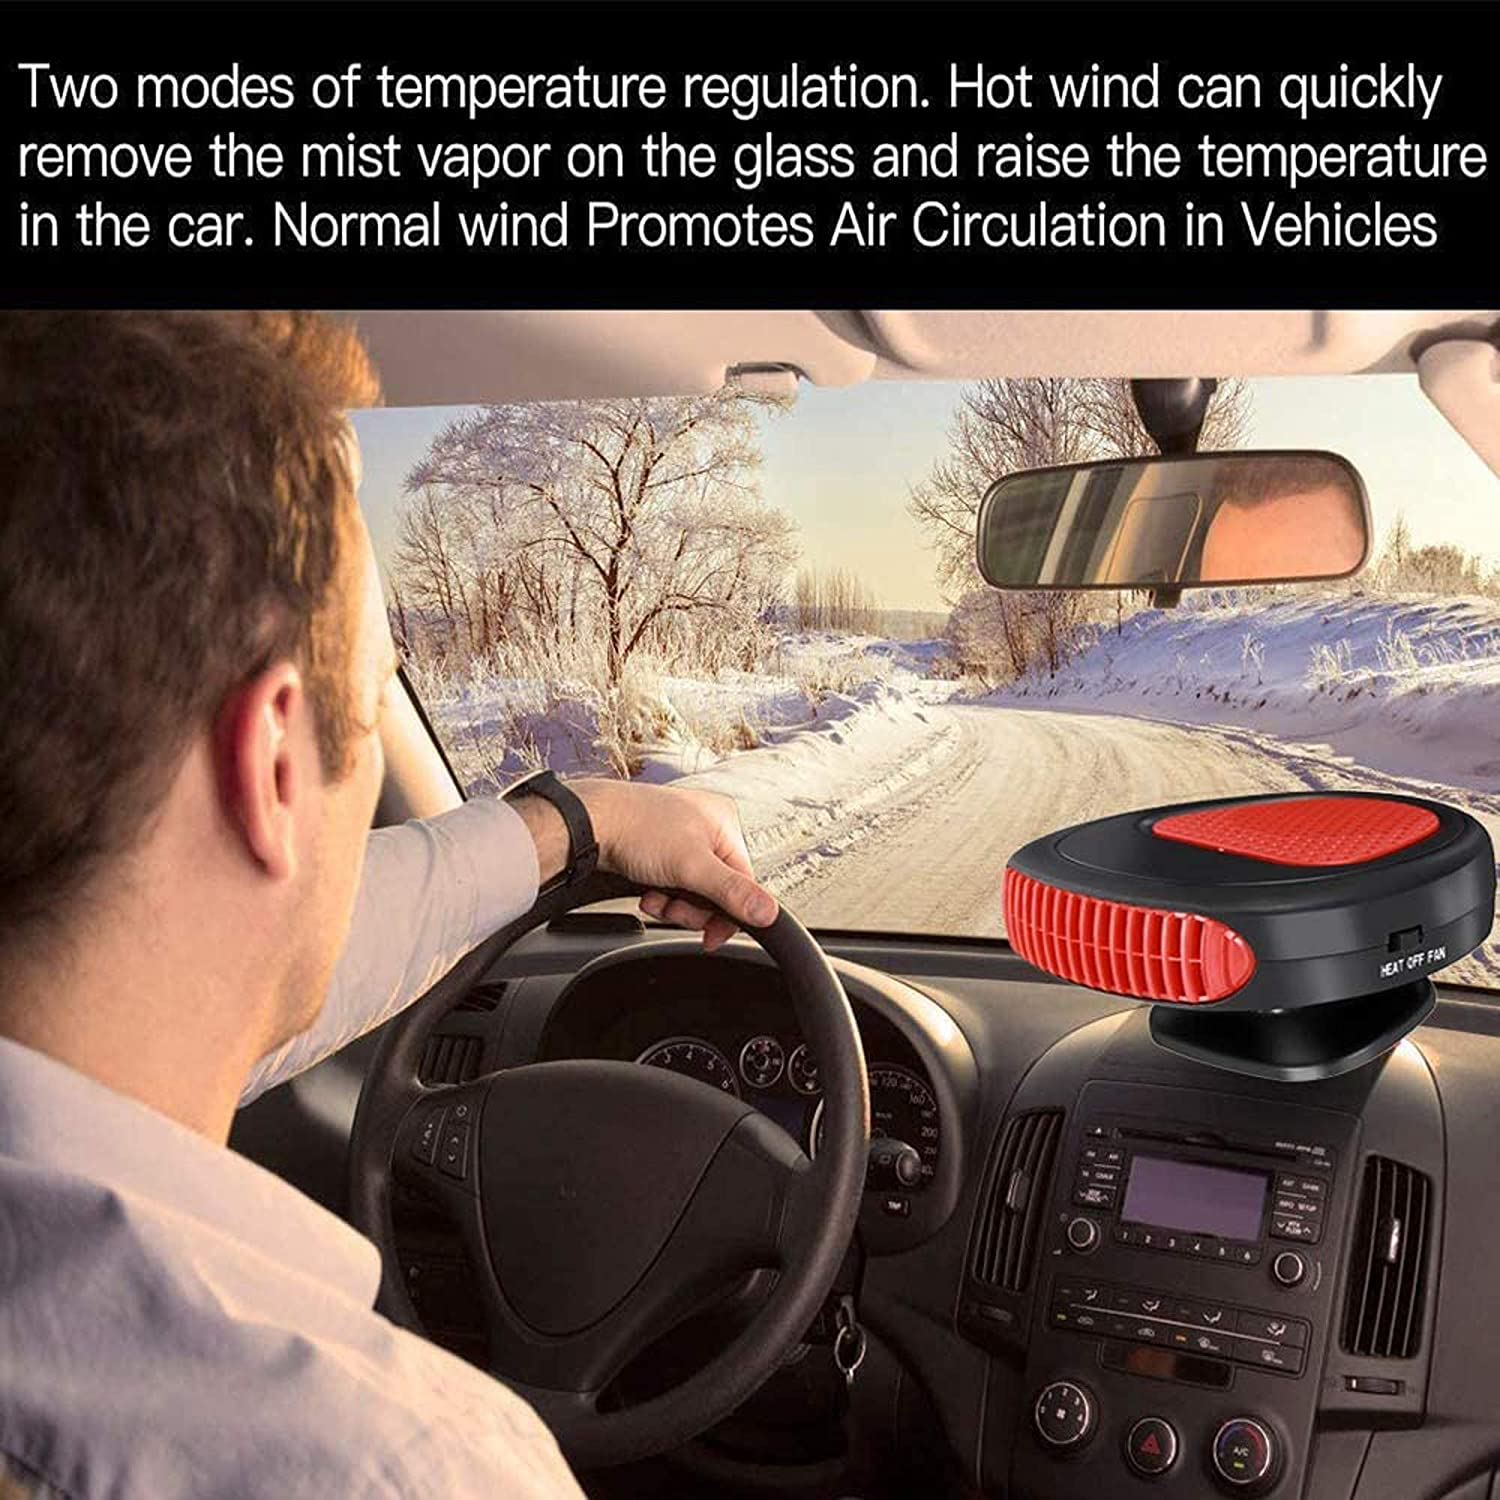 12V 150W Auto Electronic Demister 2 in 1 Ceramic Plug in Cig Lighter Car Fan Heater Portable Car Heater Low Consumption No Noise,A 30 Second Fast Heating Defrost Defogger